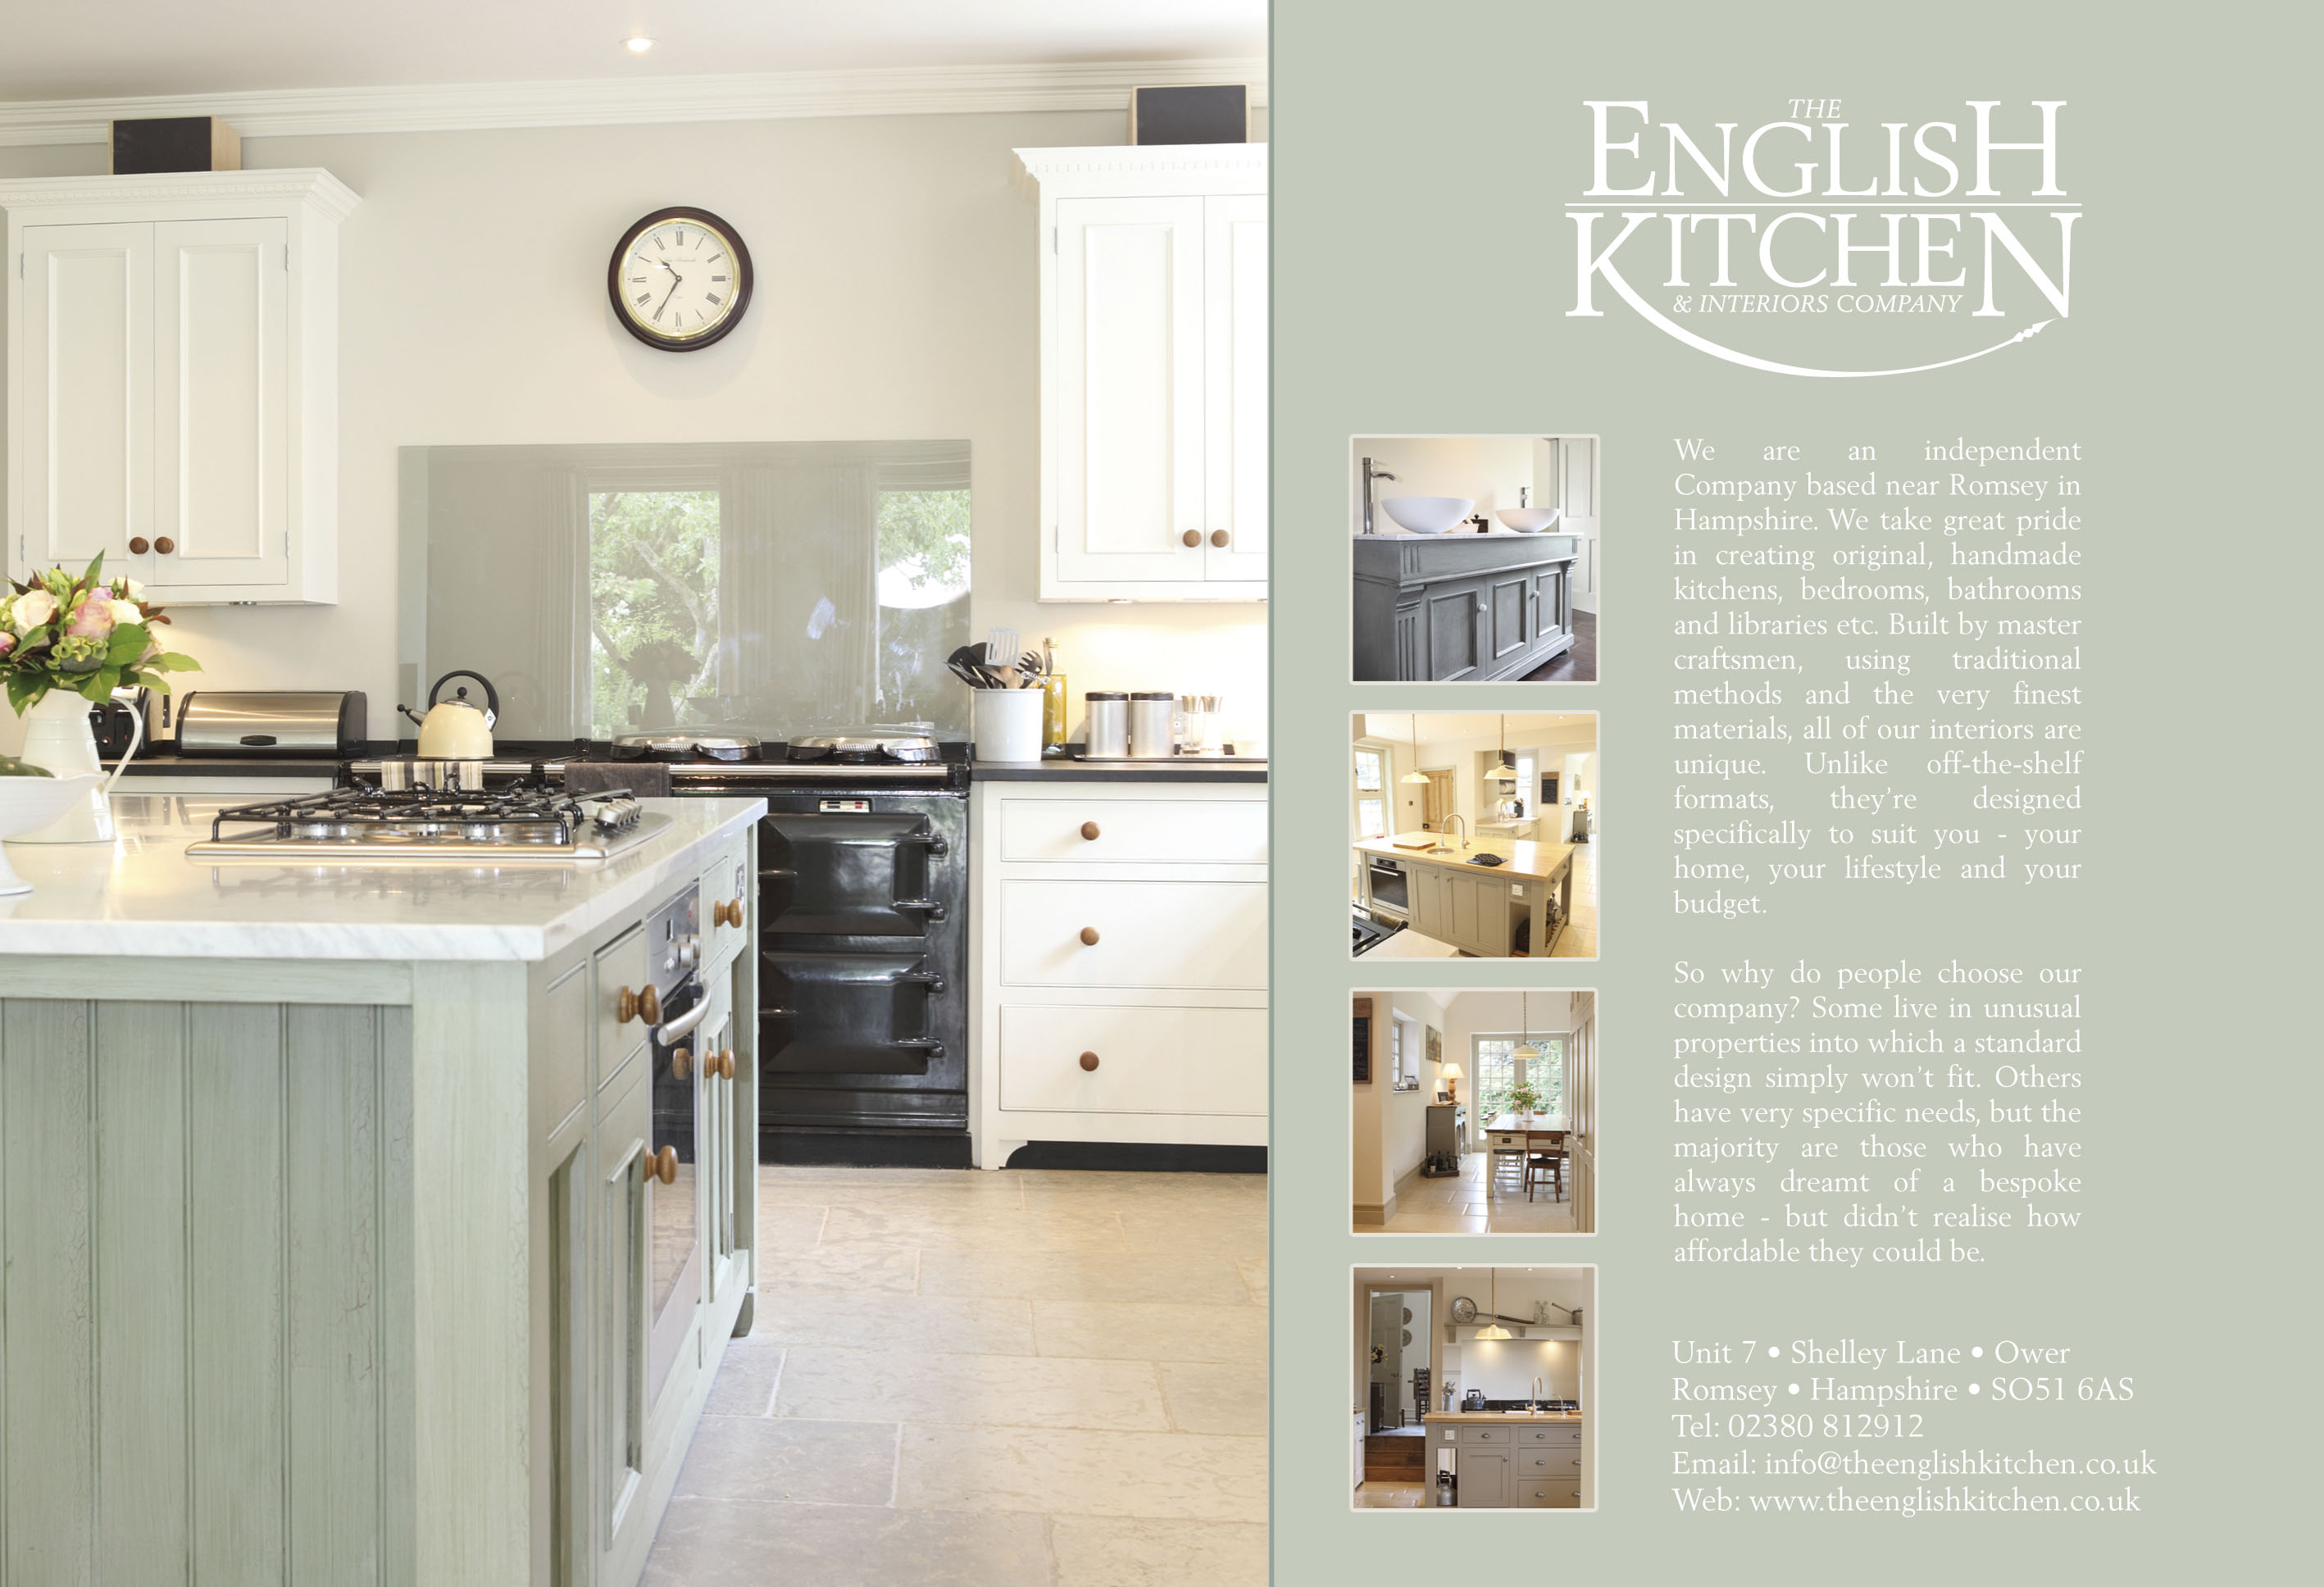 The english kitchen company handmade bespoke kitchens for Kitchen company